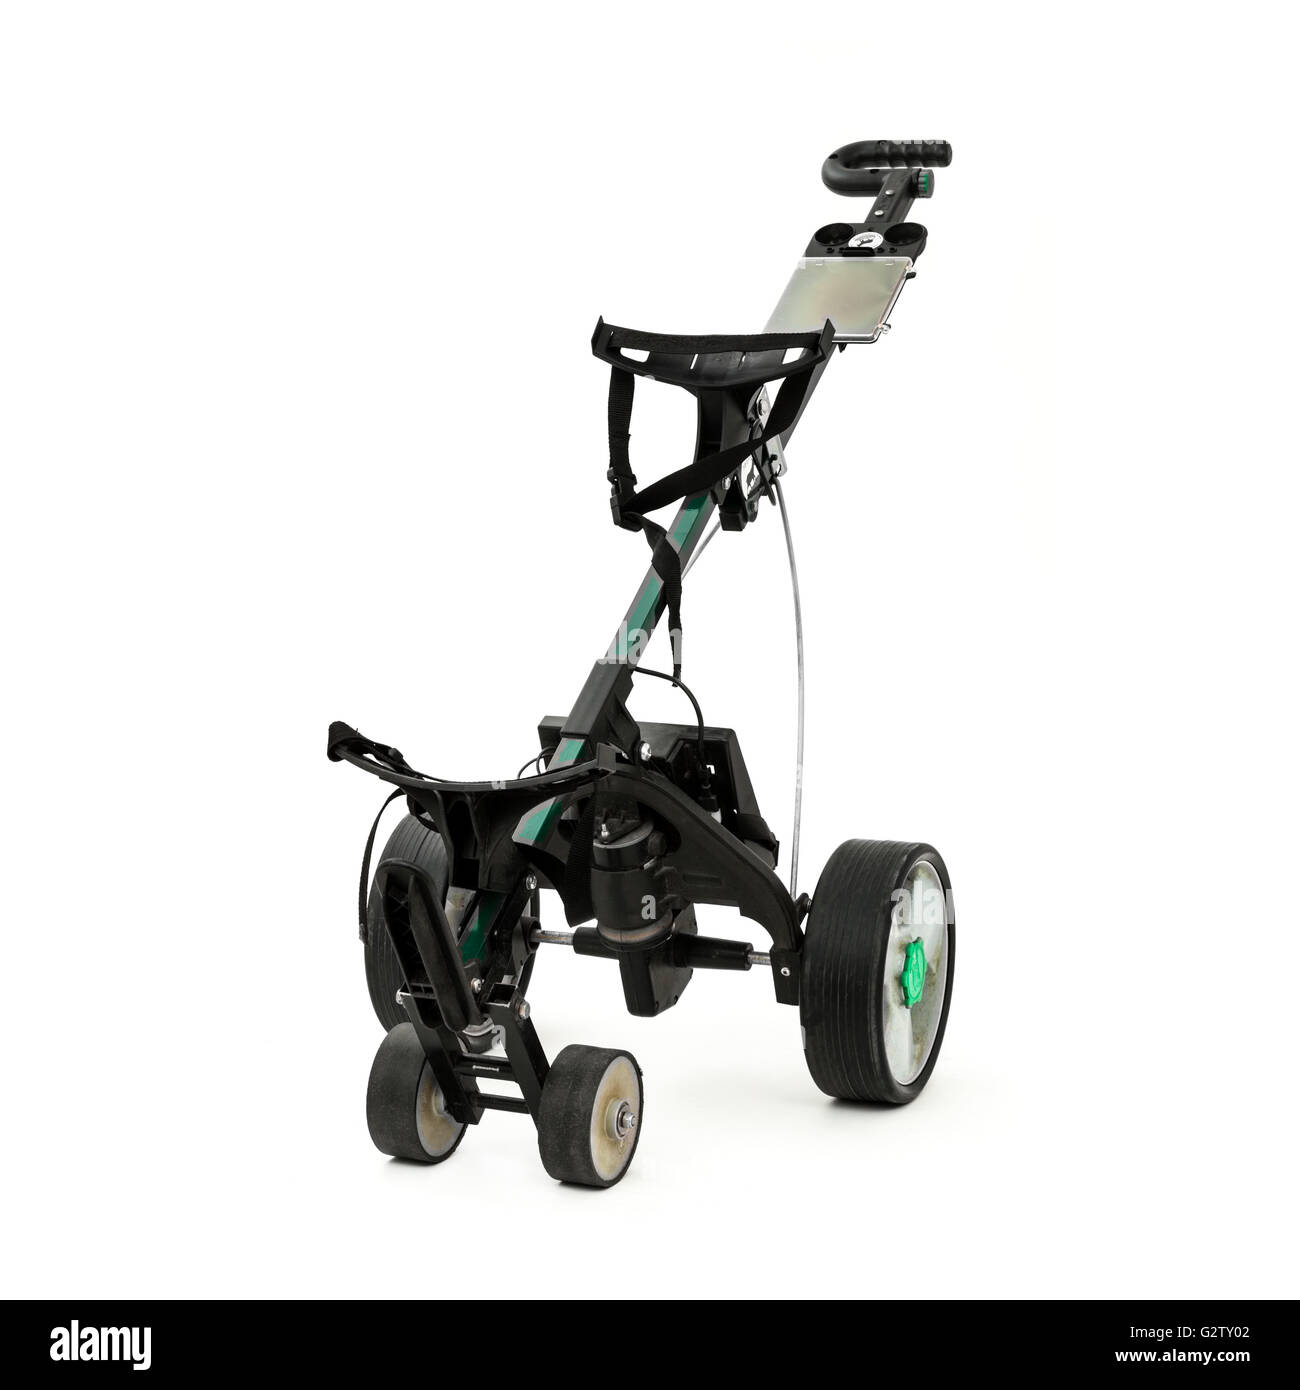 Hill Billy Electric Battery Powered Golf Trolley, made in